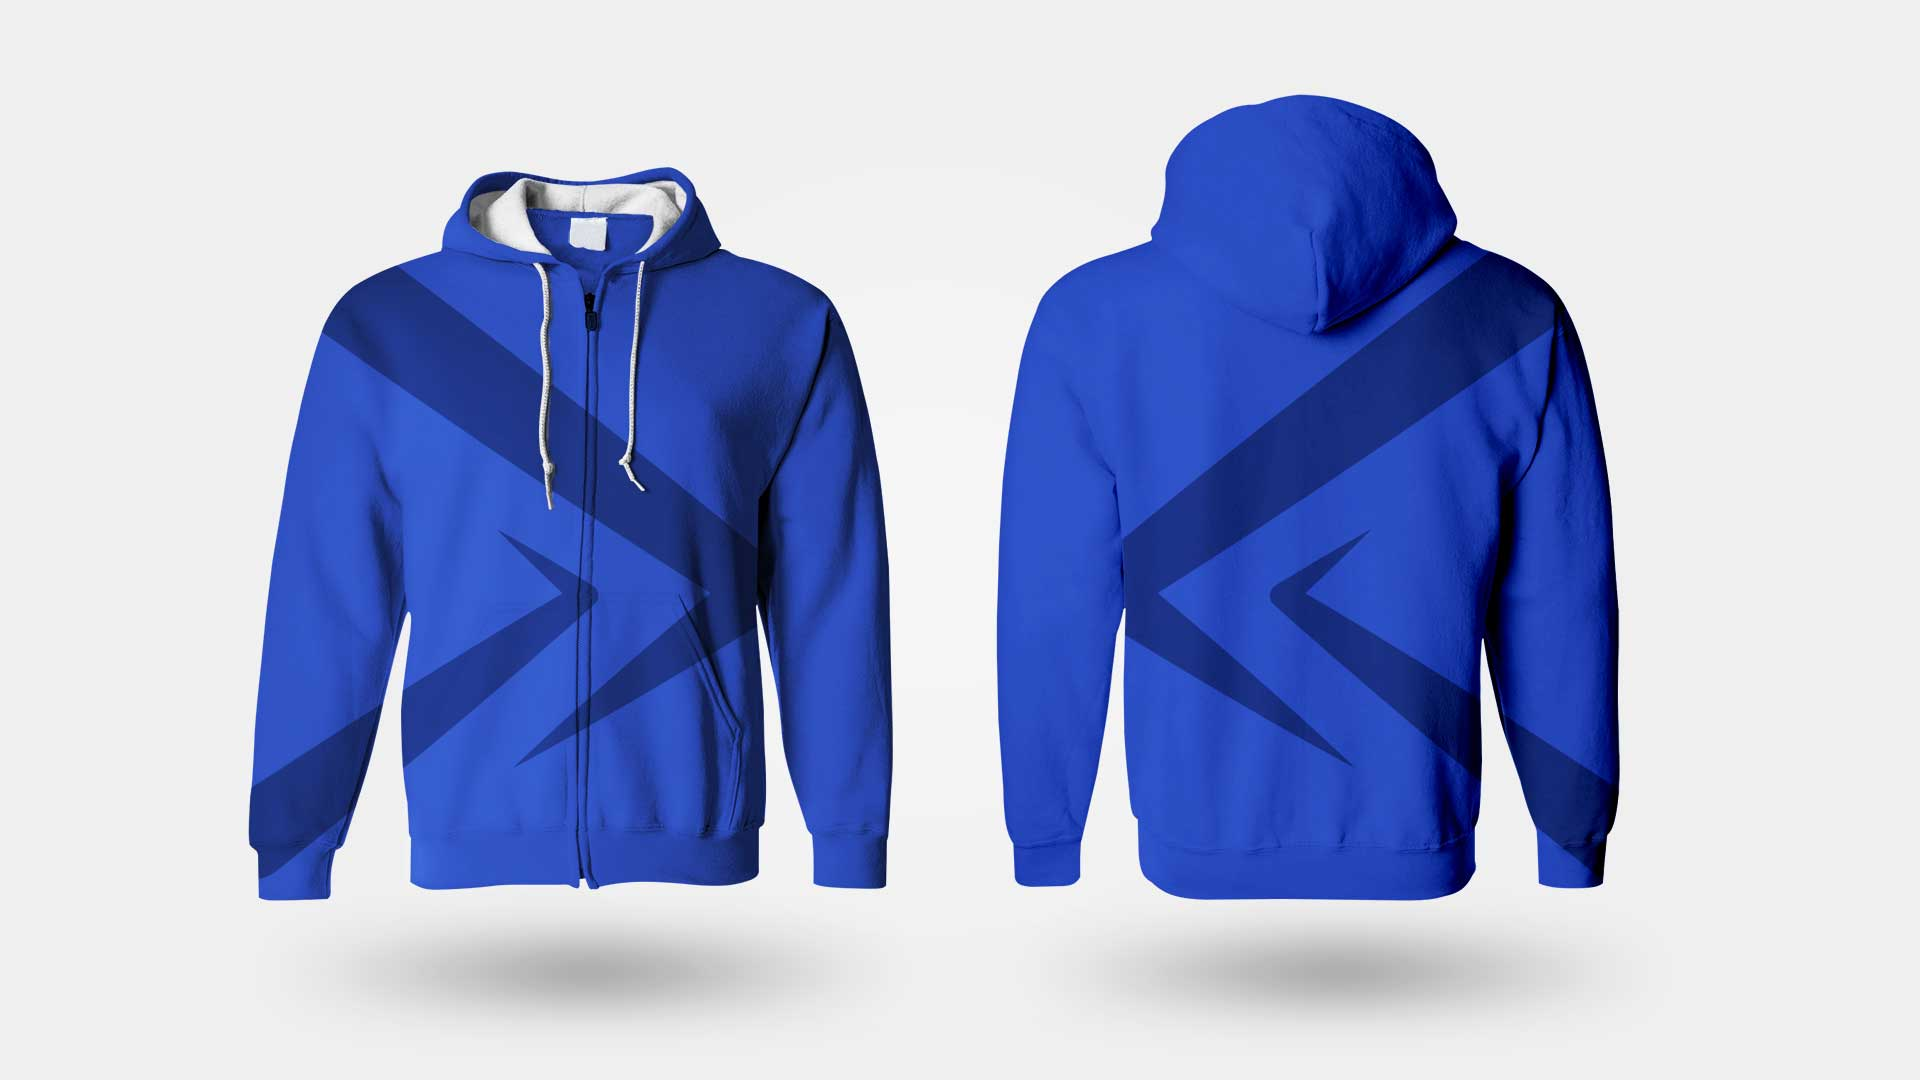 Pro Action hoodie, sweater and sweatshirt back & front logo mock-up